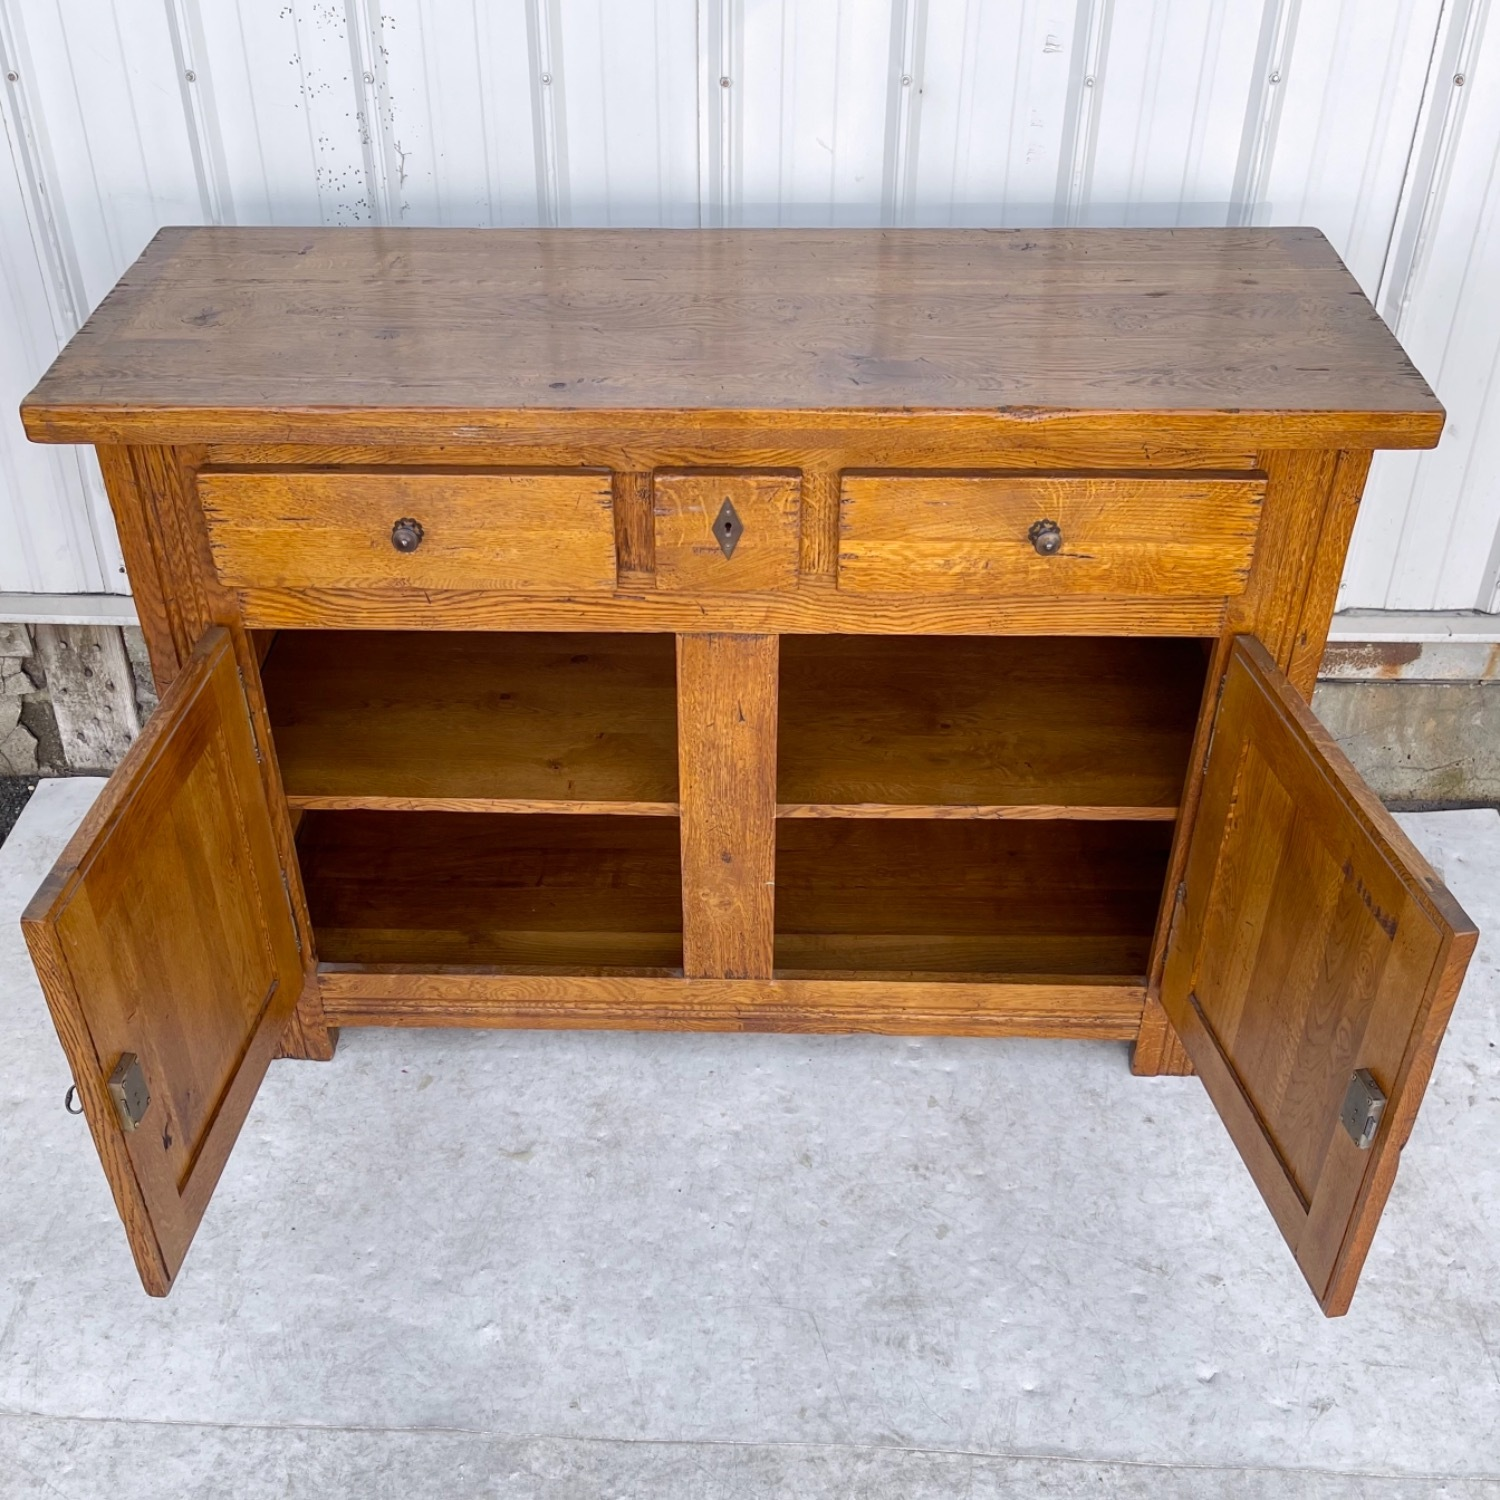 Antique Country Style Cupboard With Topper - image-11